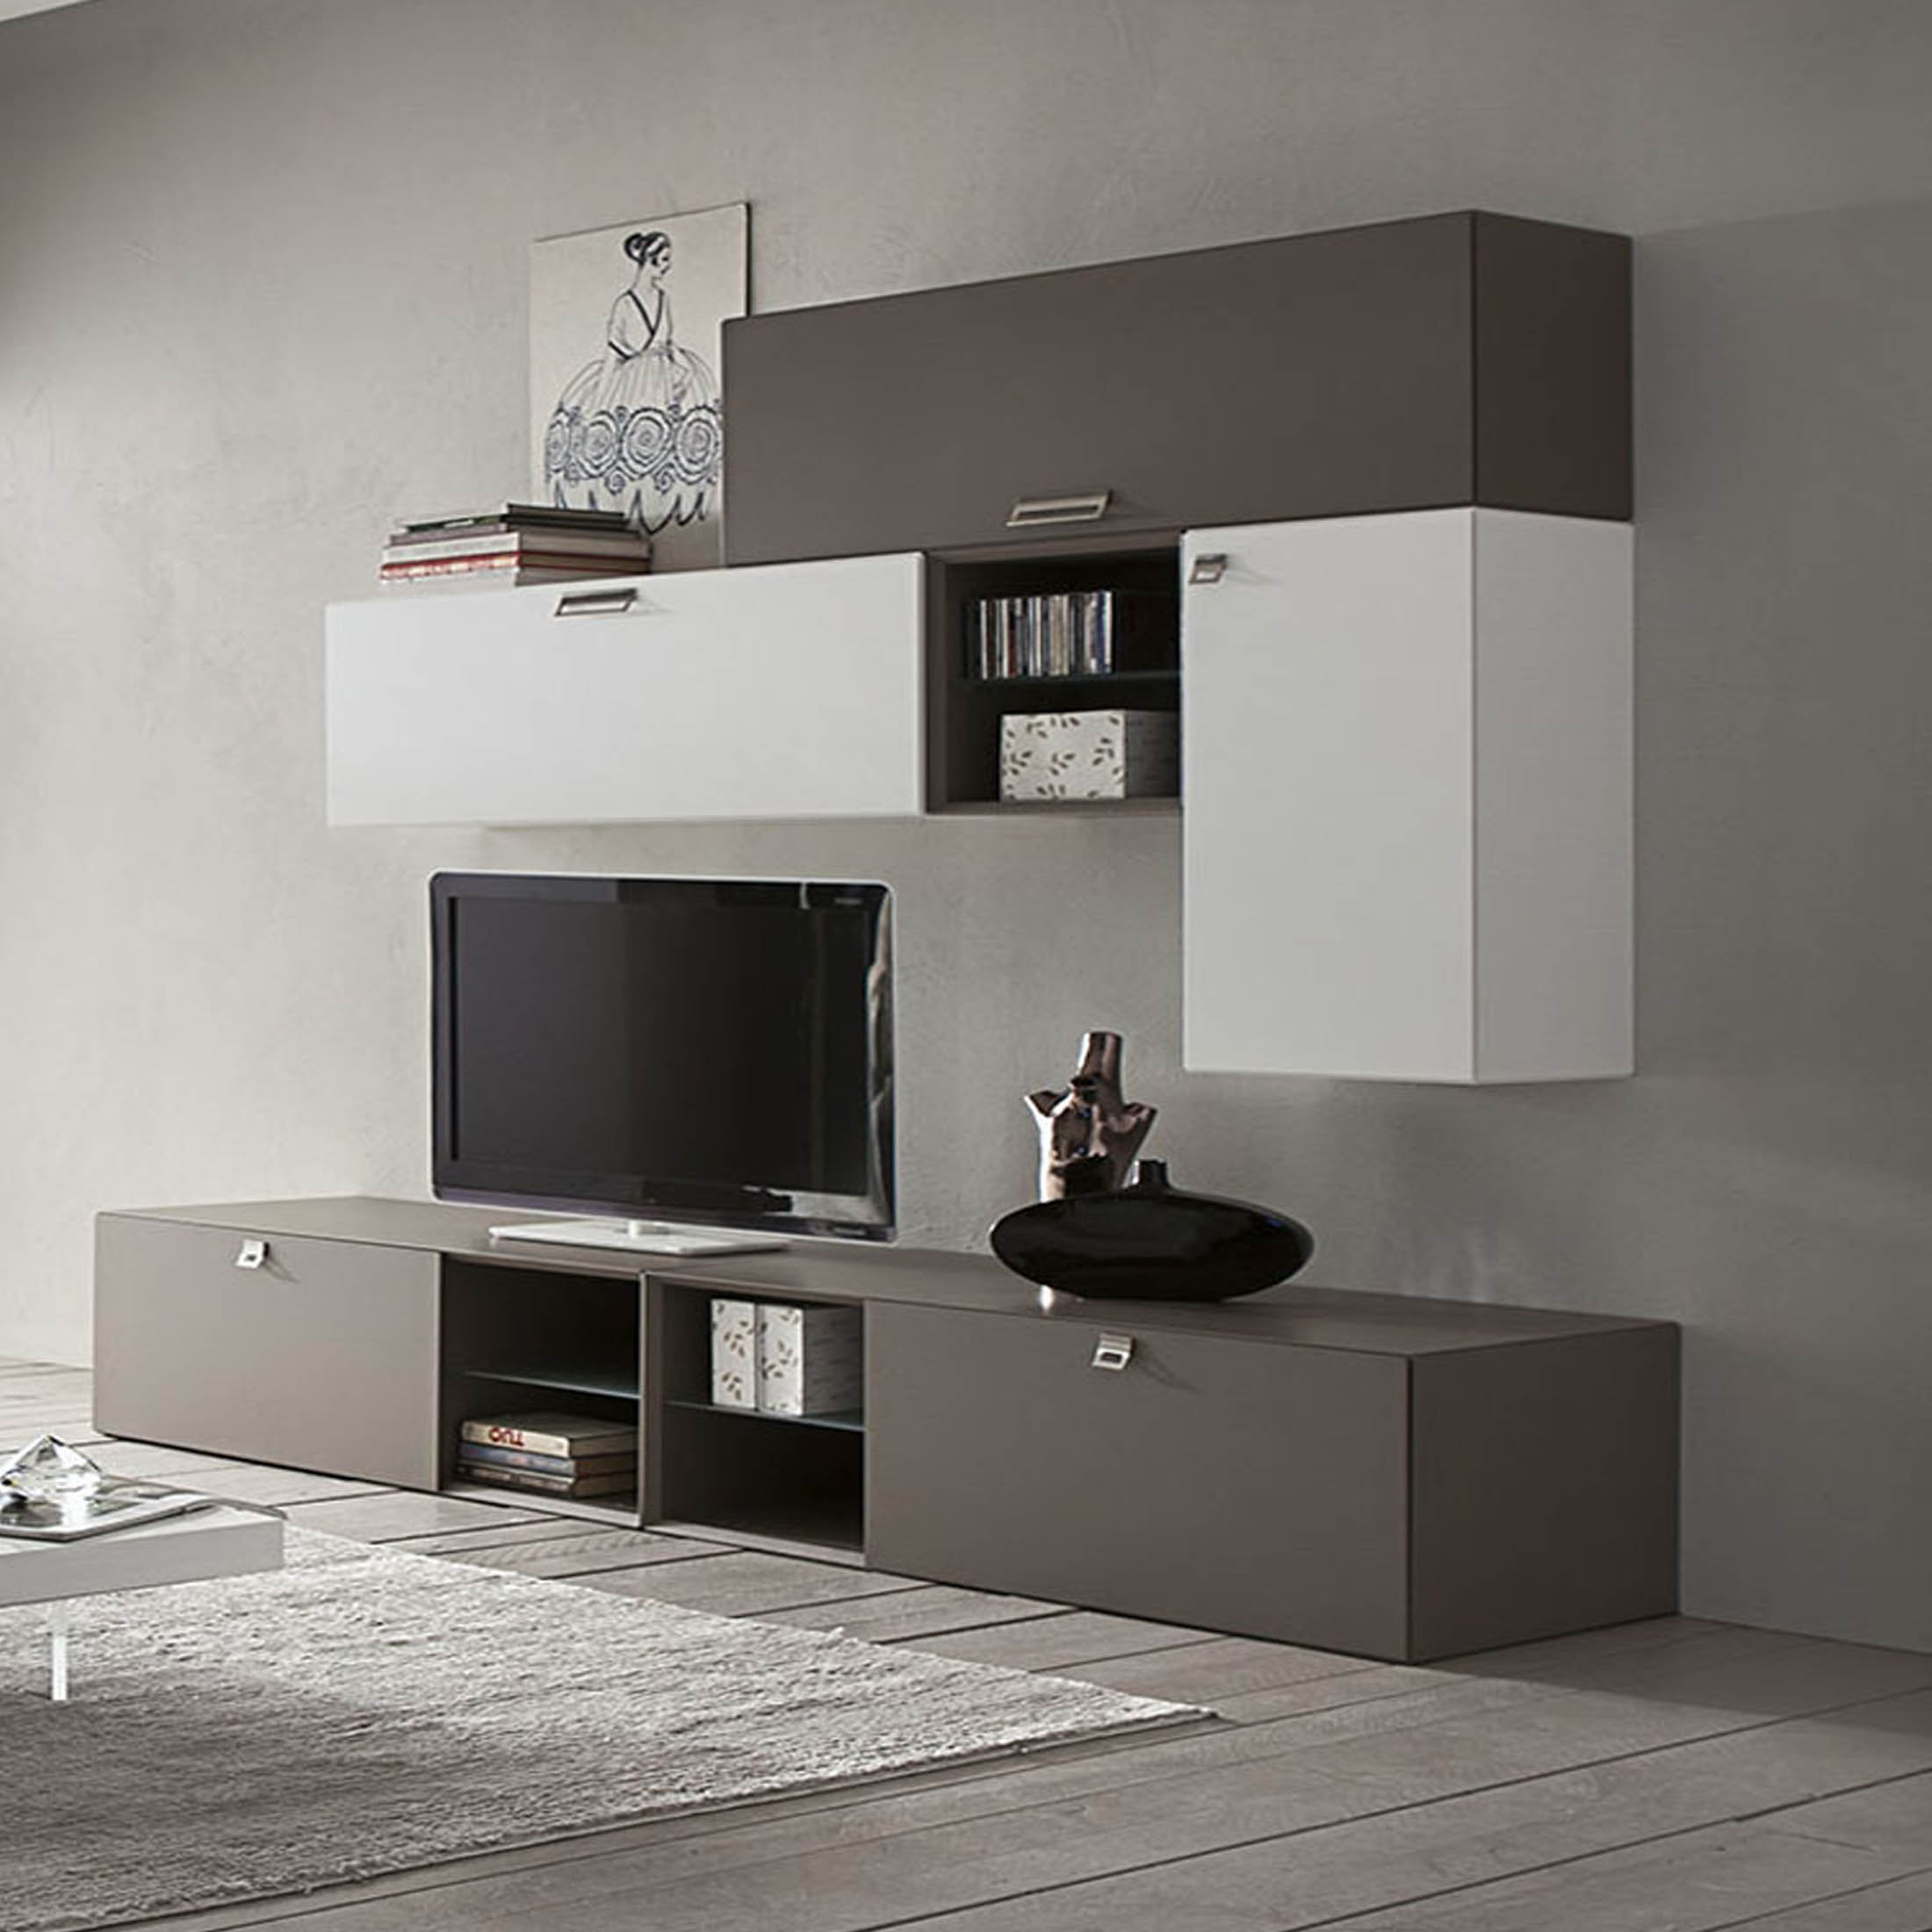 Inspiration gallery - Wall units for living room mumbai ...